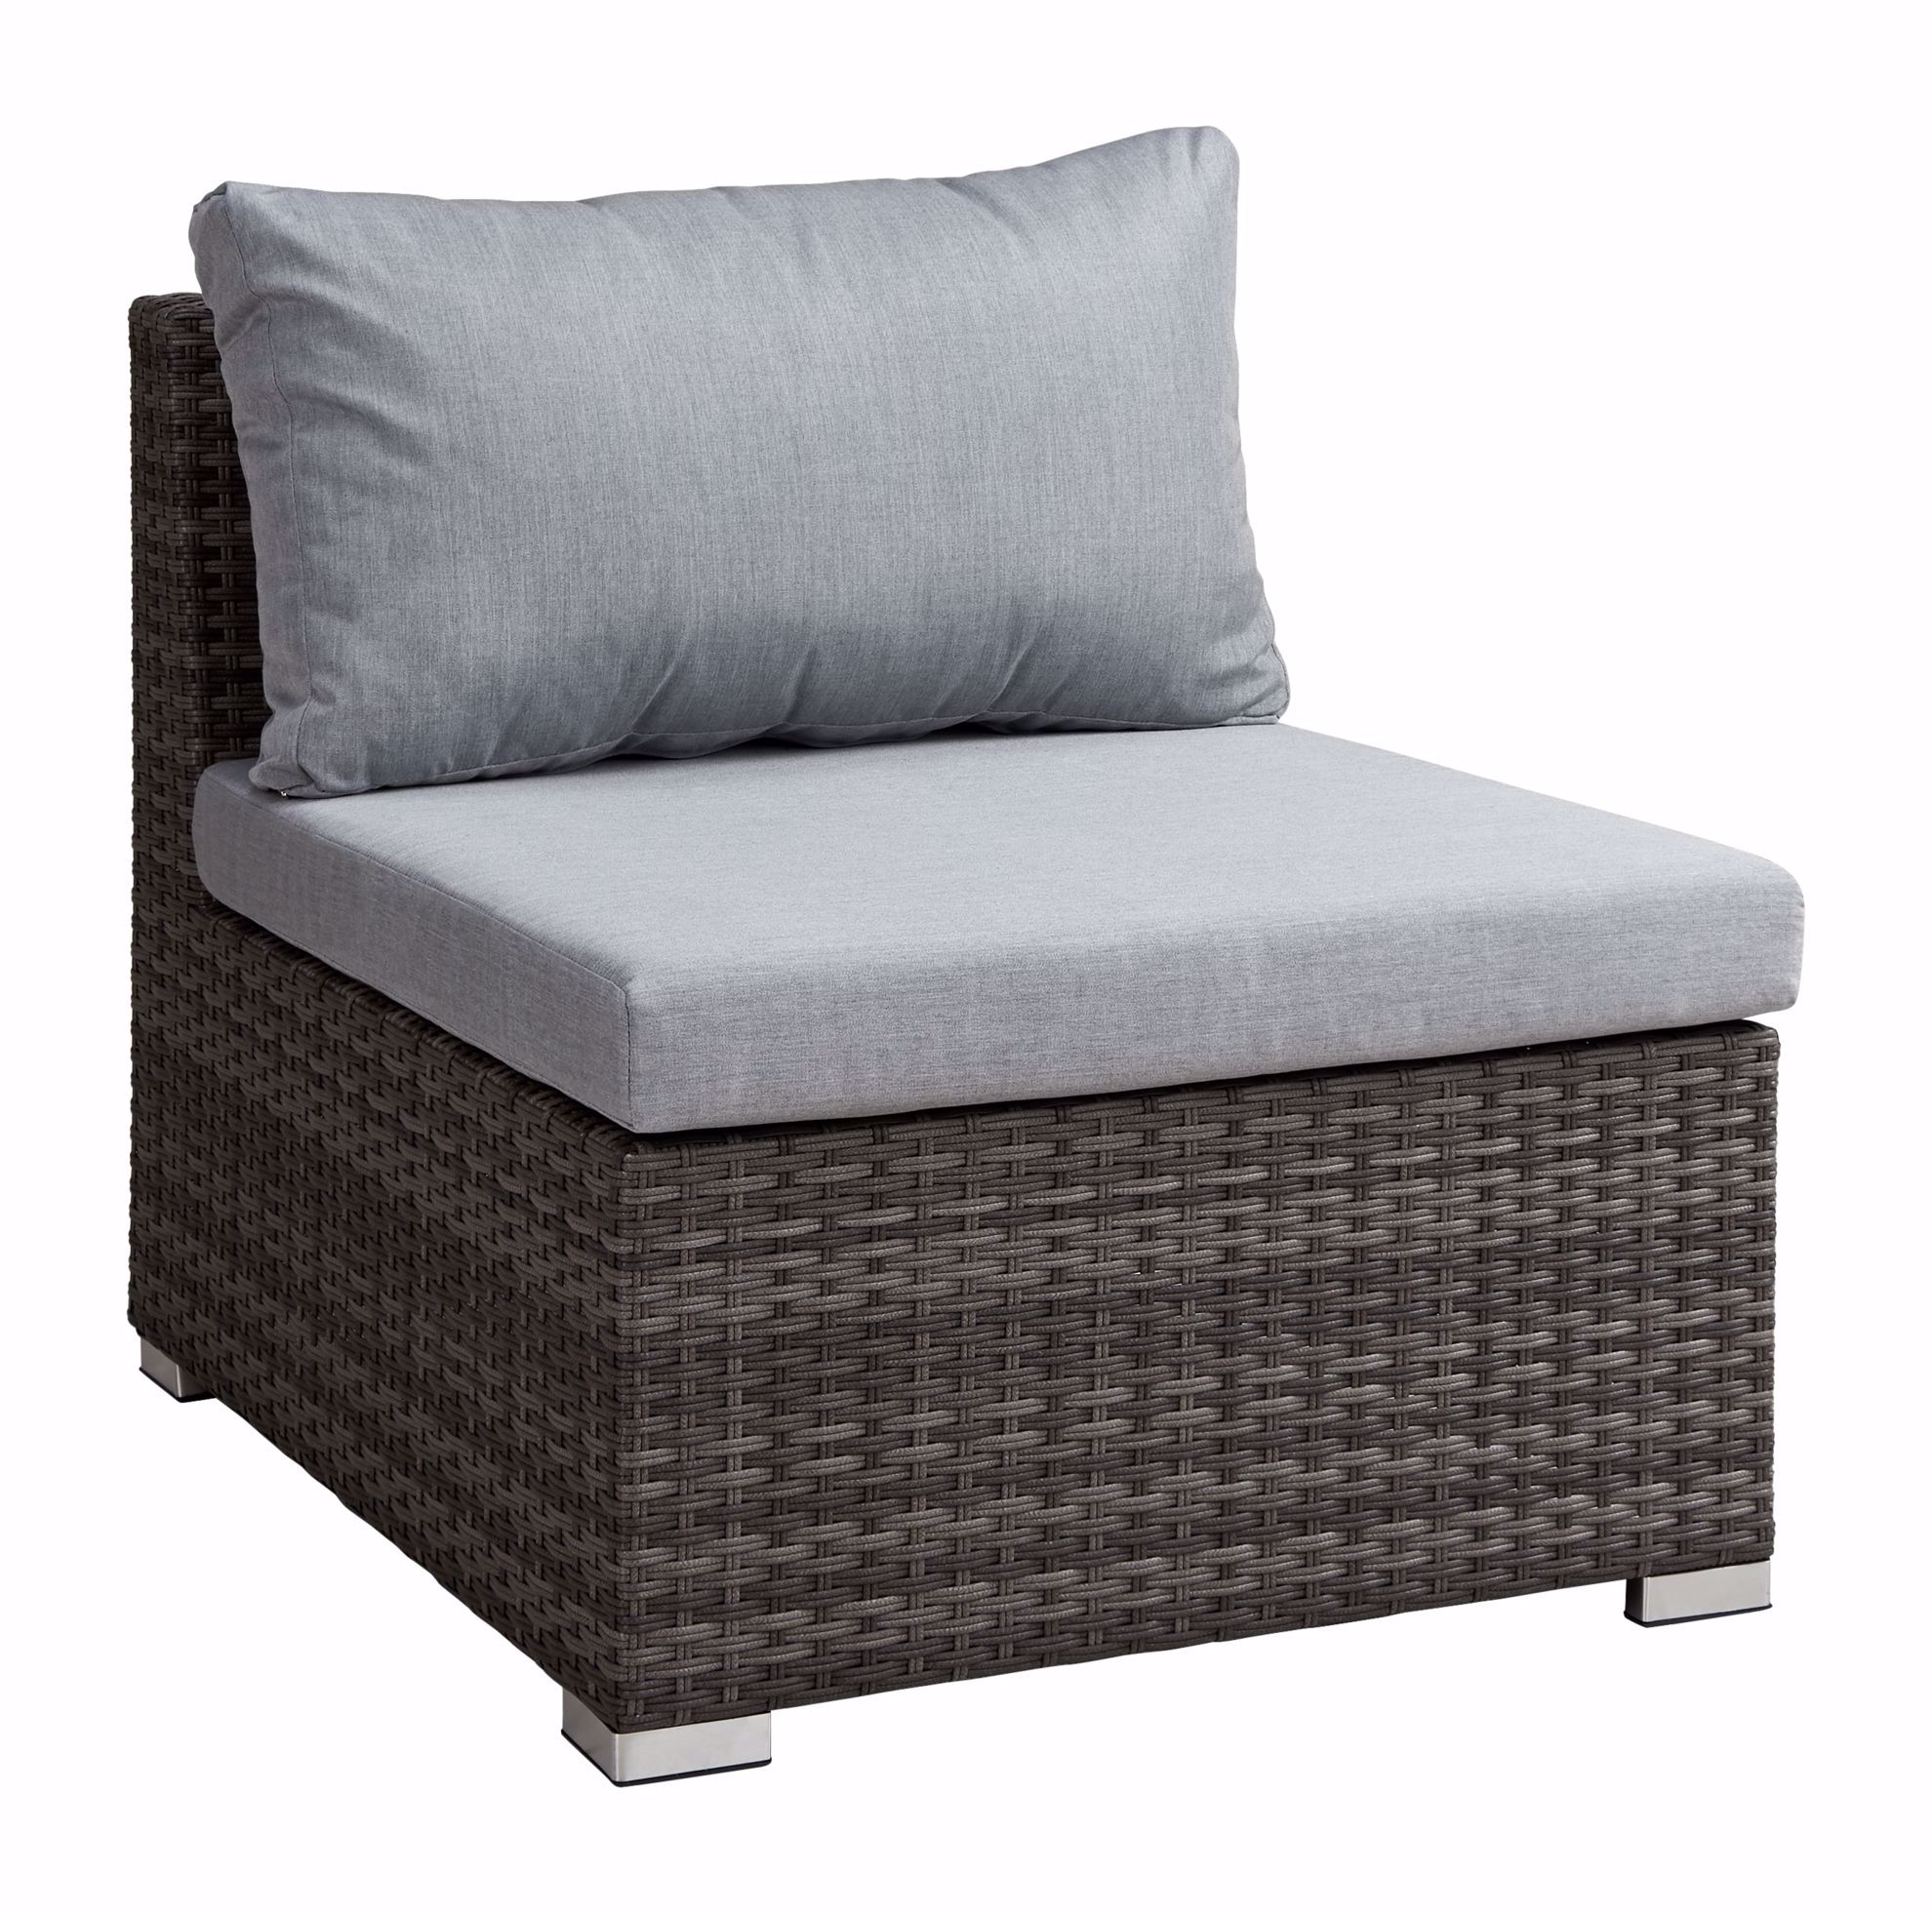 Picture of Cushion Nest Set - Loveseat, 2 Chairs, 2 Ottomons, and Cocktail Table